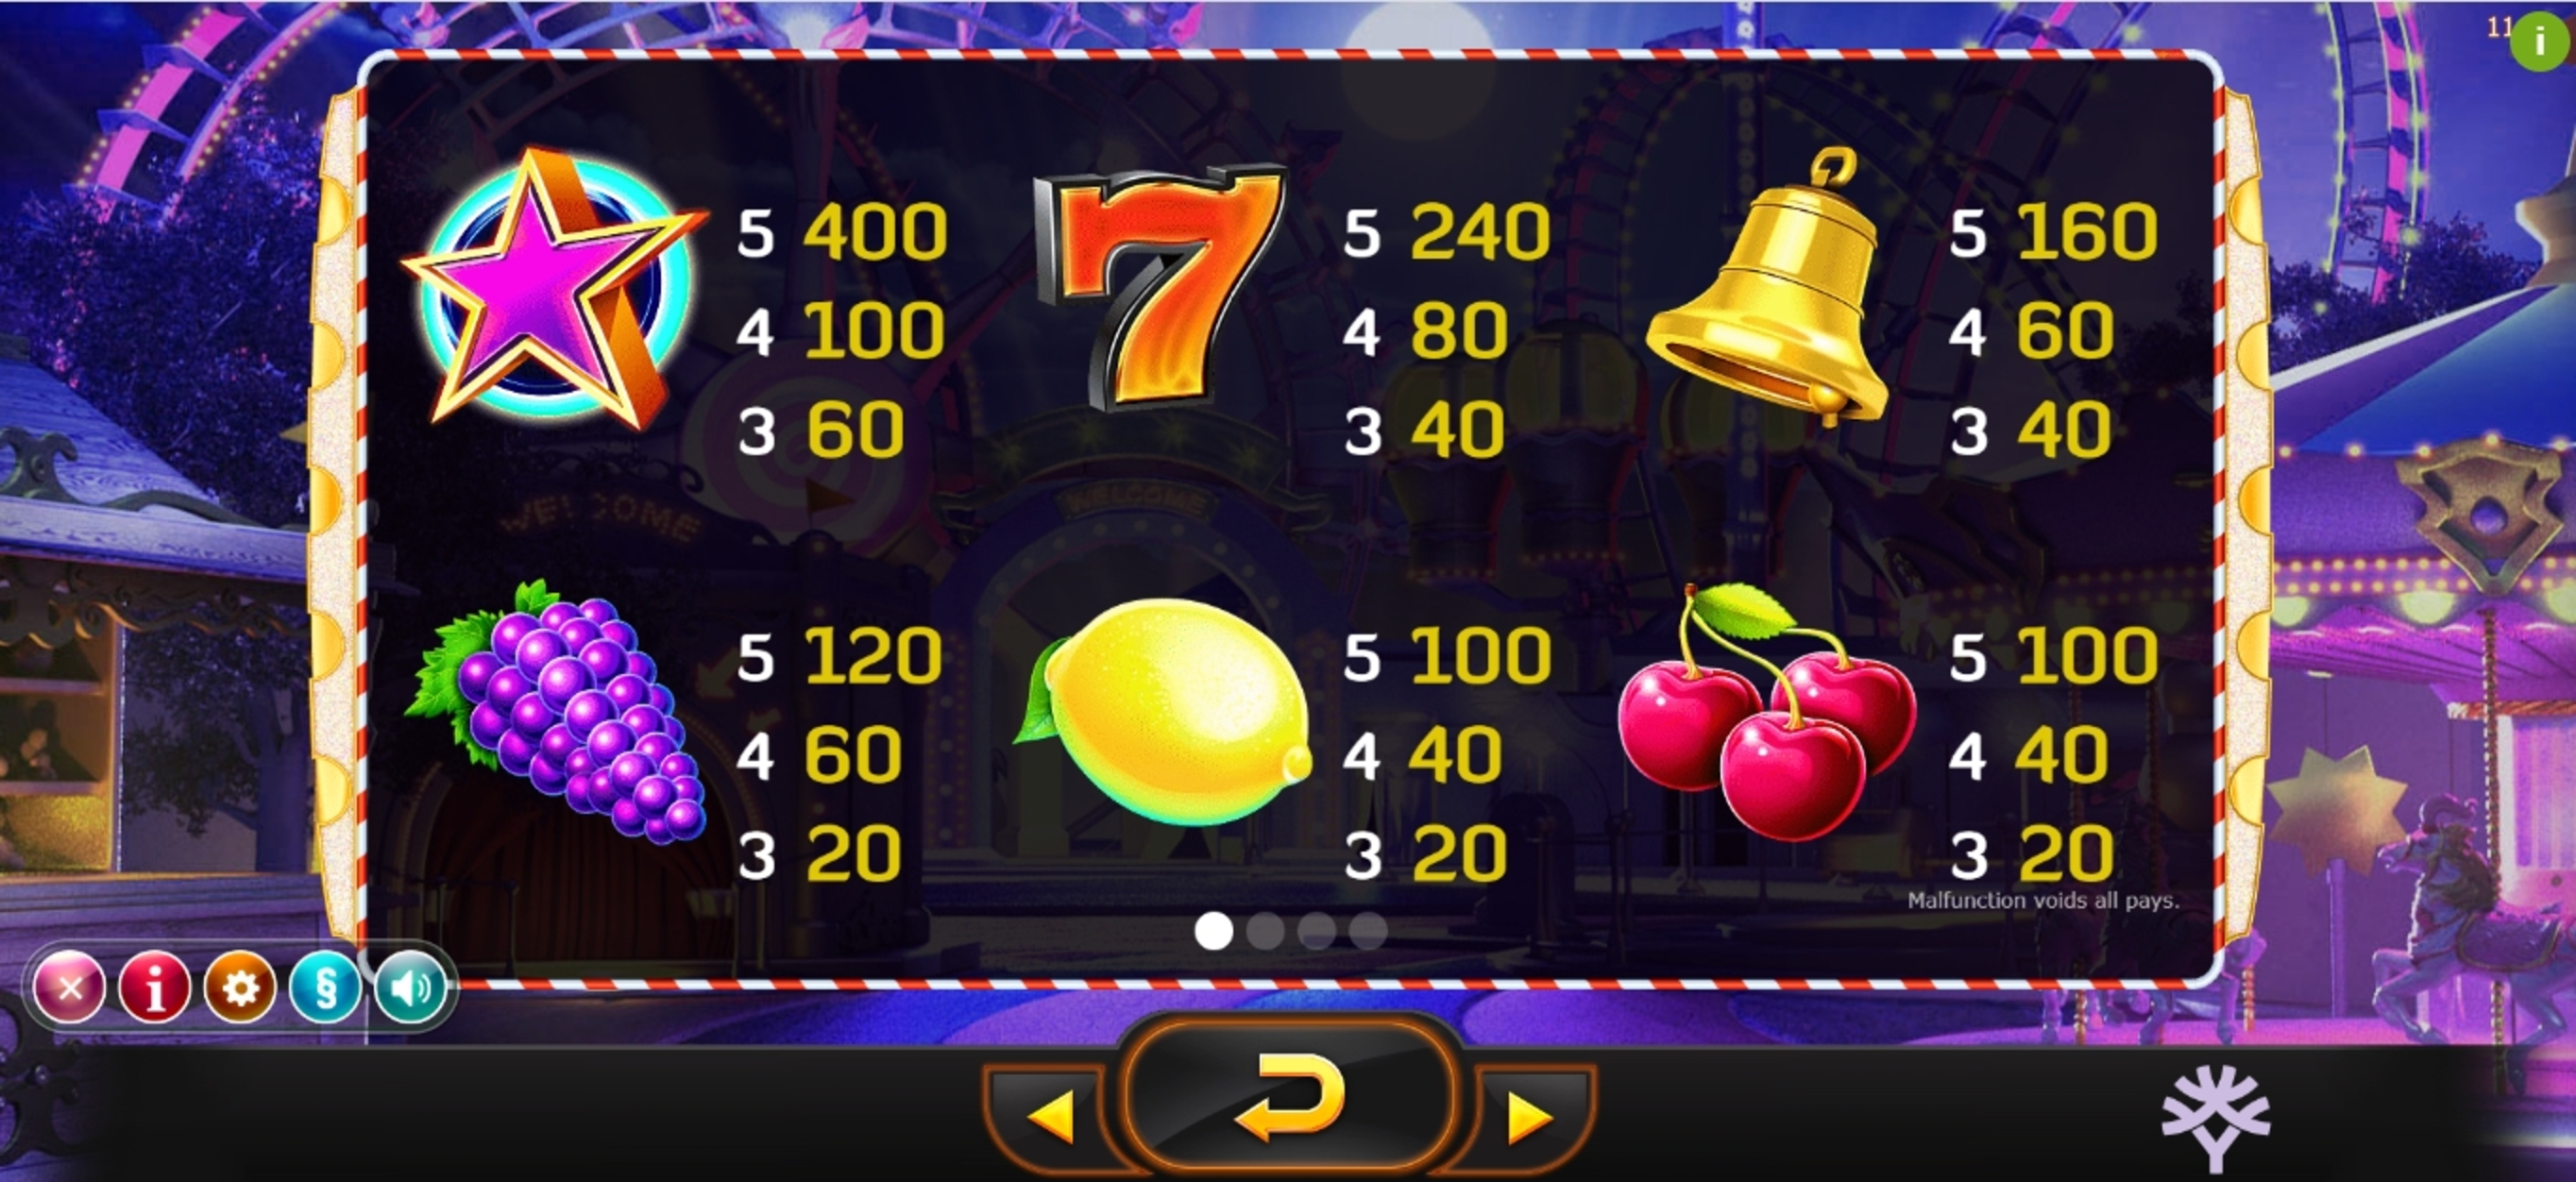 Info of Jokerizer Slot Game by Yggdrasil